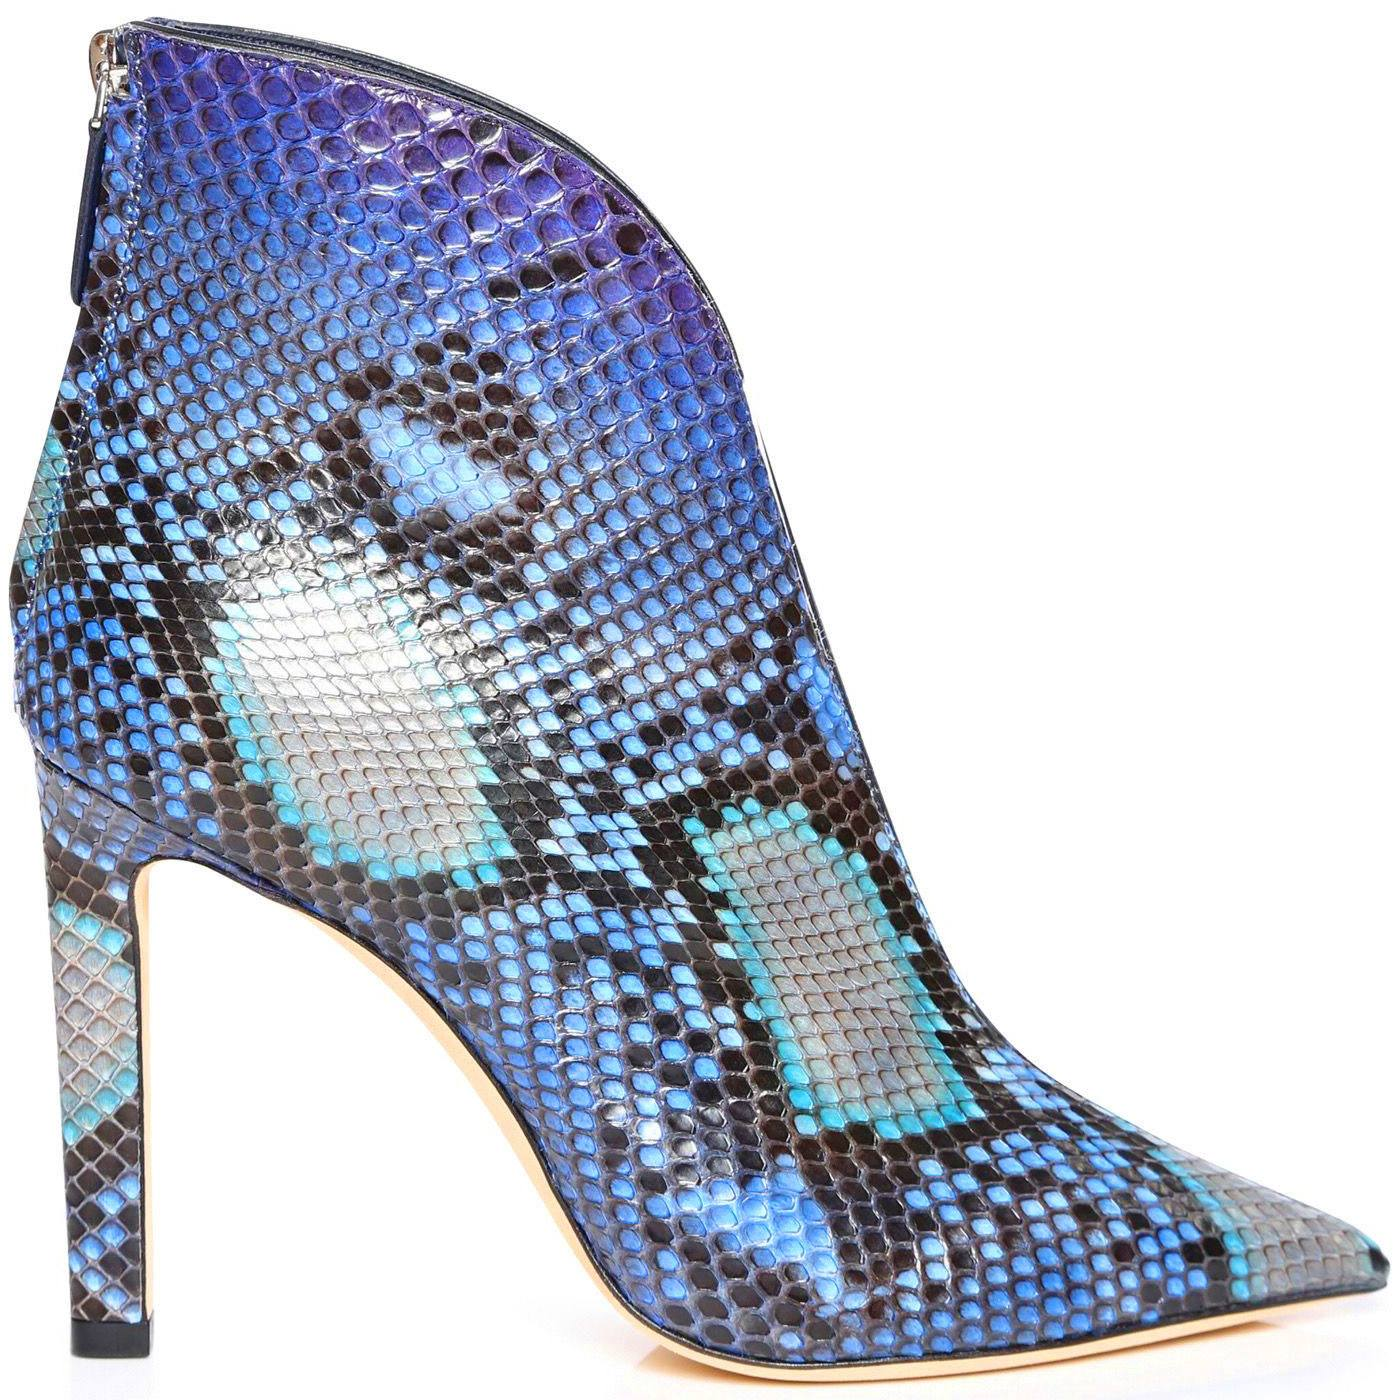 Bowie 100 Python Pointed Toe Booties